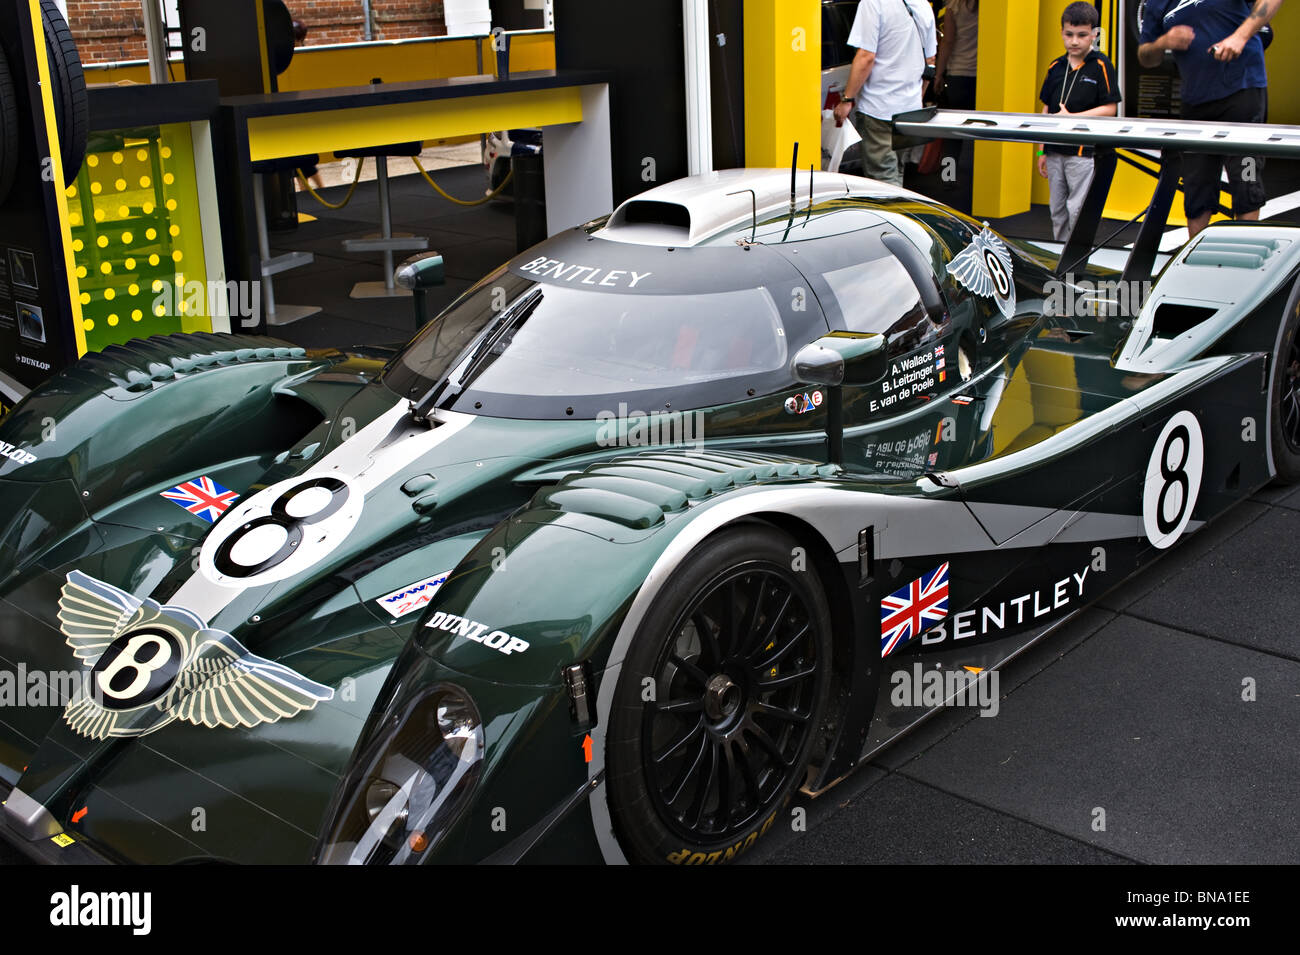 Bentley Speed 8 Le Mans Sports Racing Car At Goodwood Festival Of